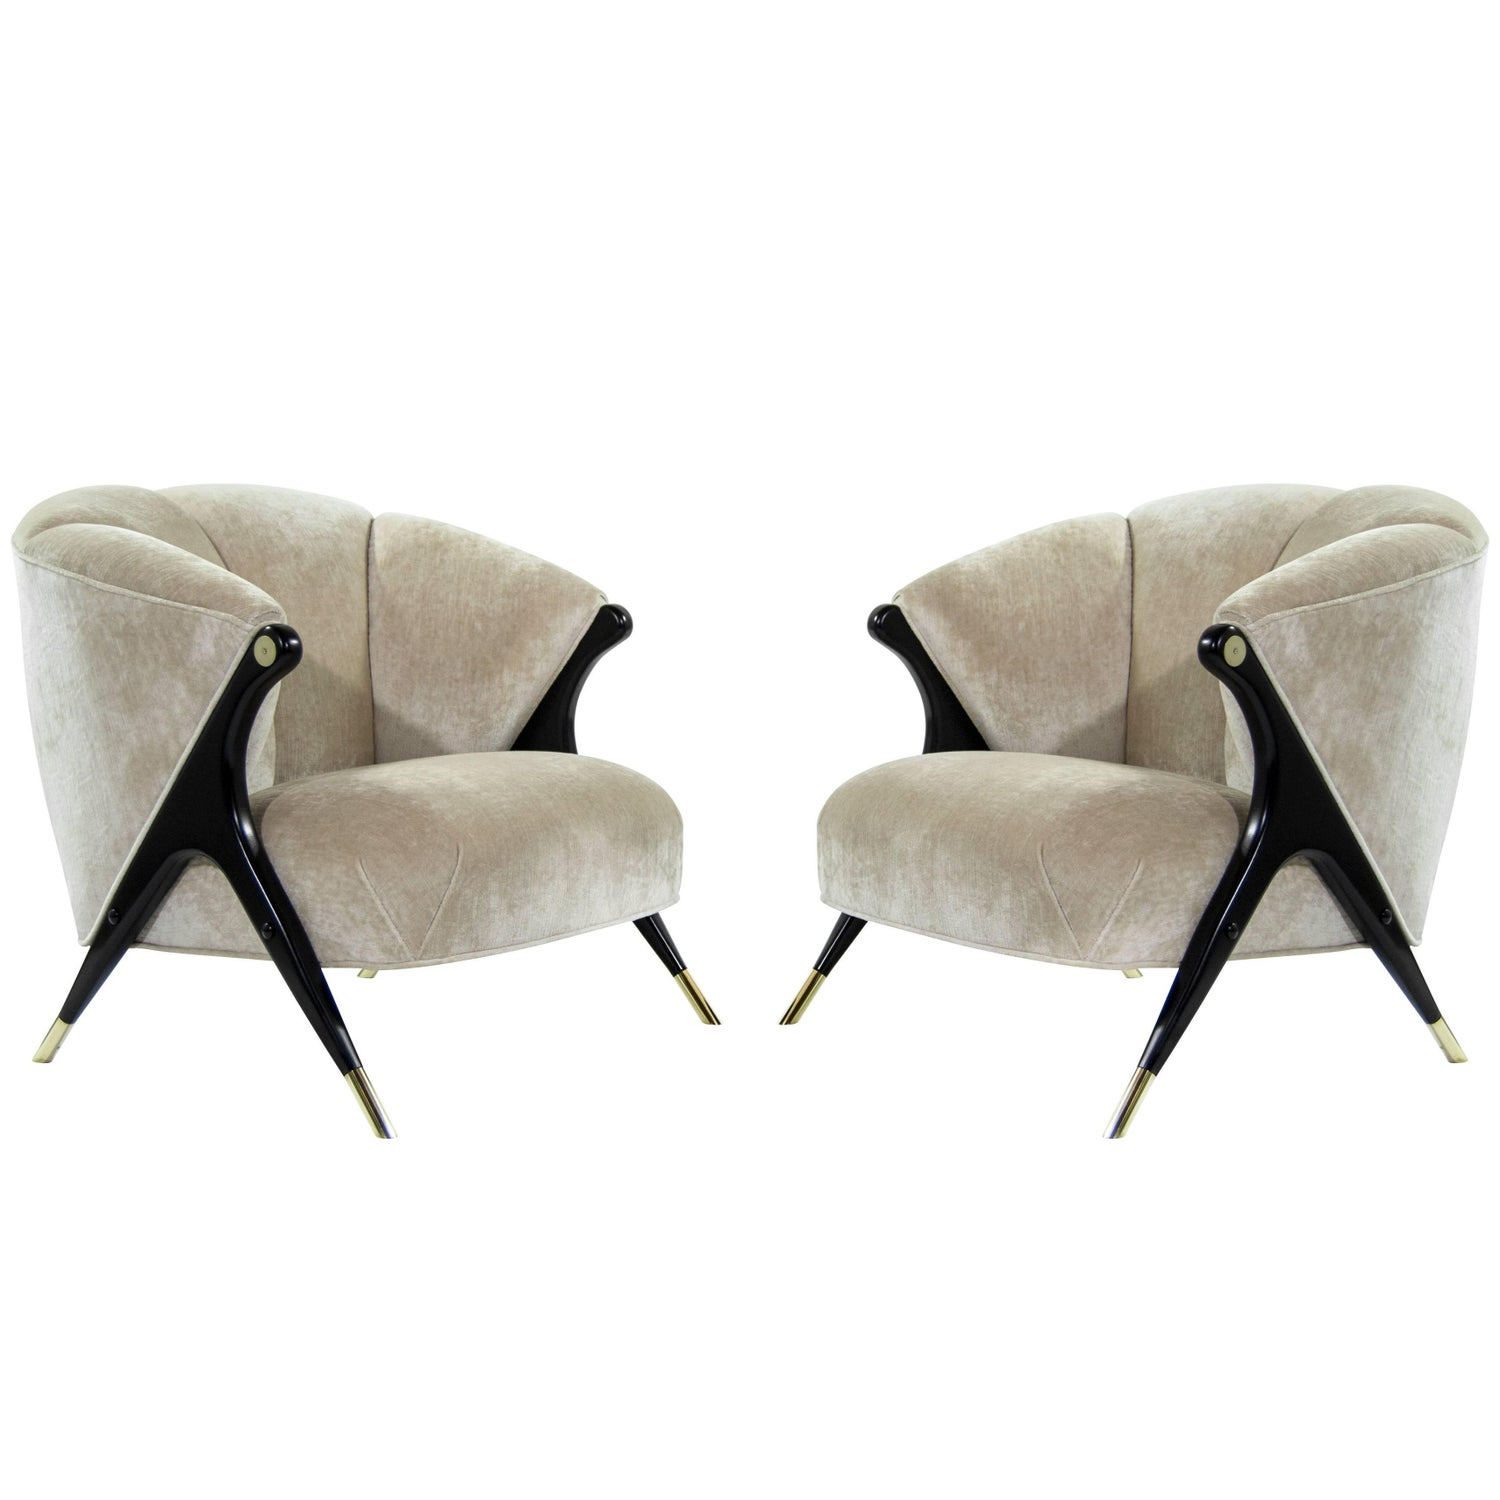 Karpen of California Lounge Chairs 13 For Sale at 1stdibs